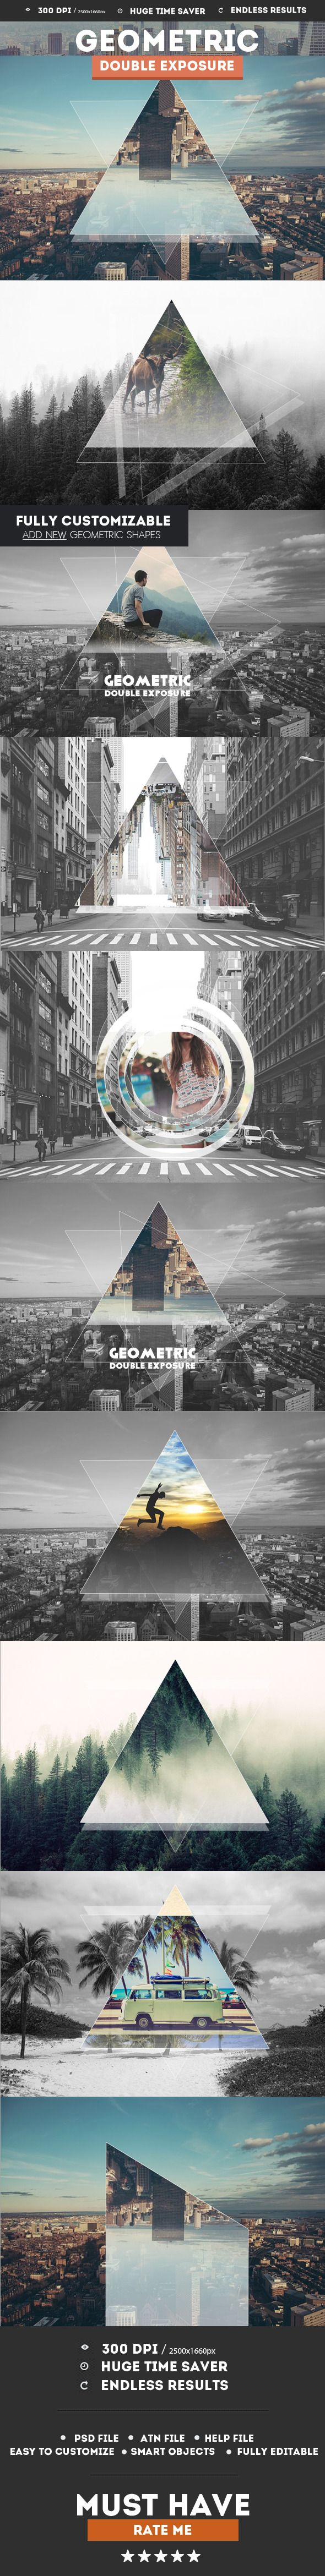 Geometric Double Exposure Photoshop Creator - Photo Effects Actions